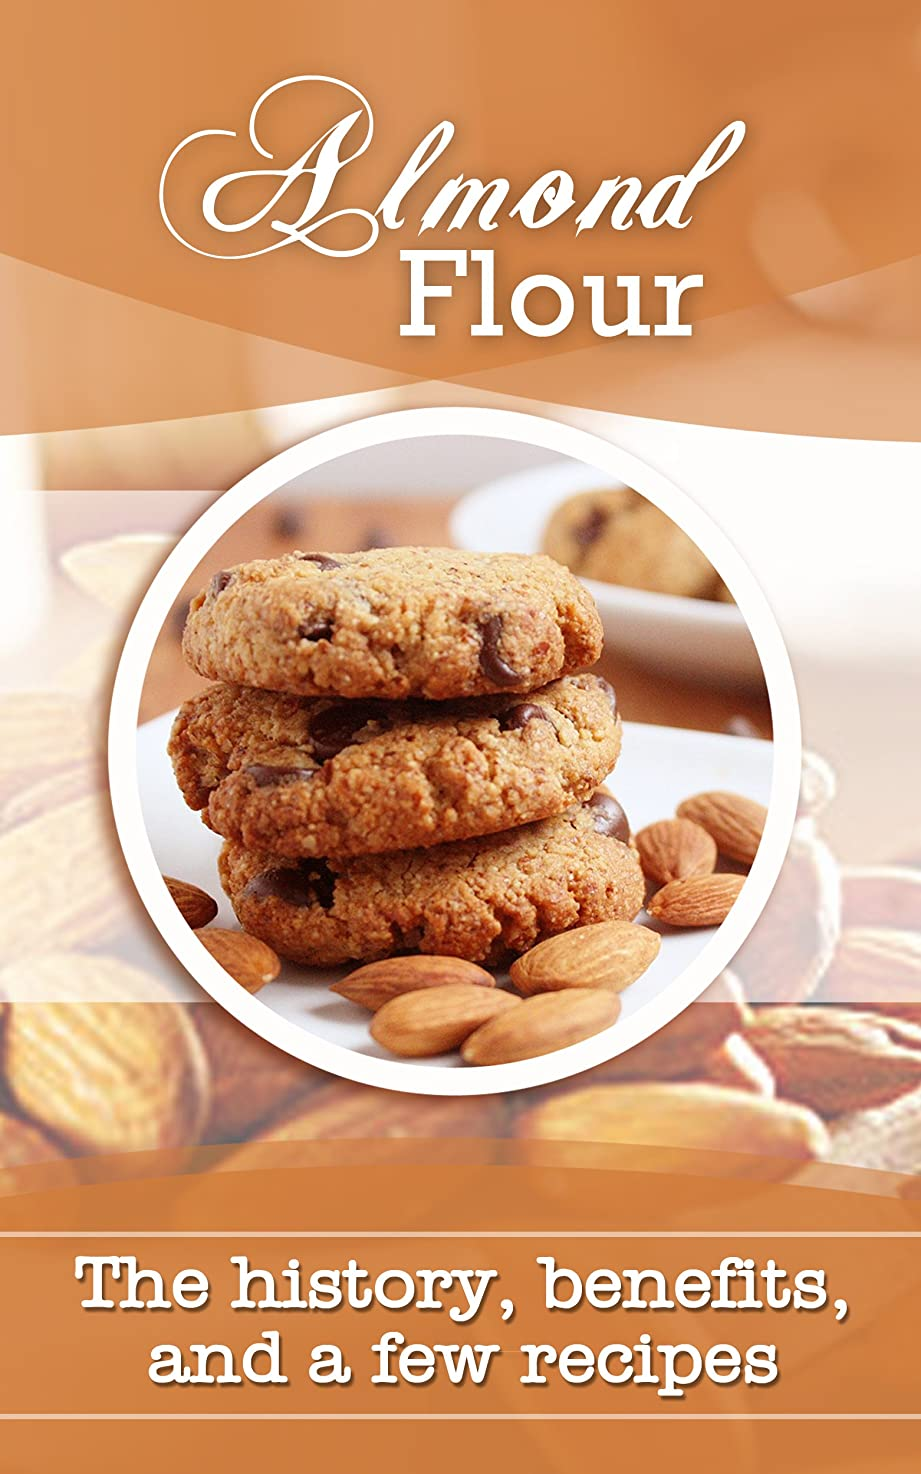 Almond Flour: The history, benefits, and a few recipes (English Edition)